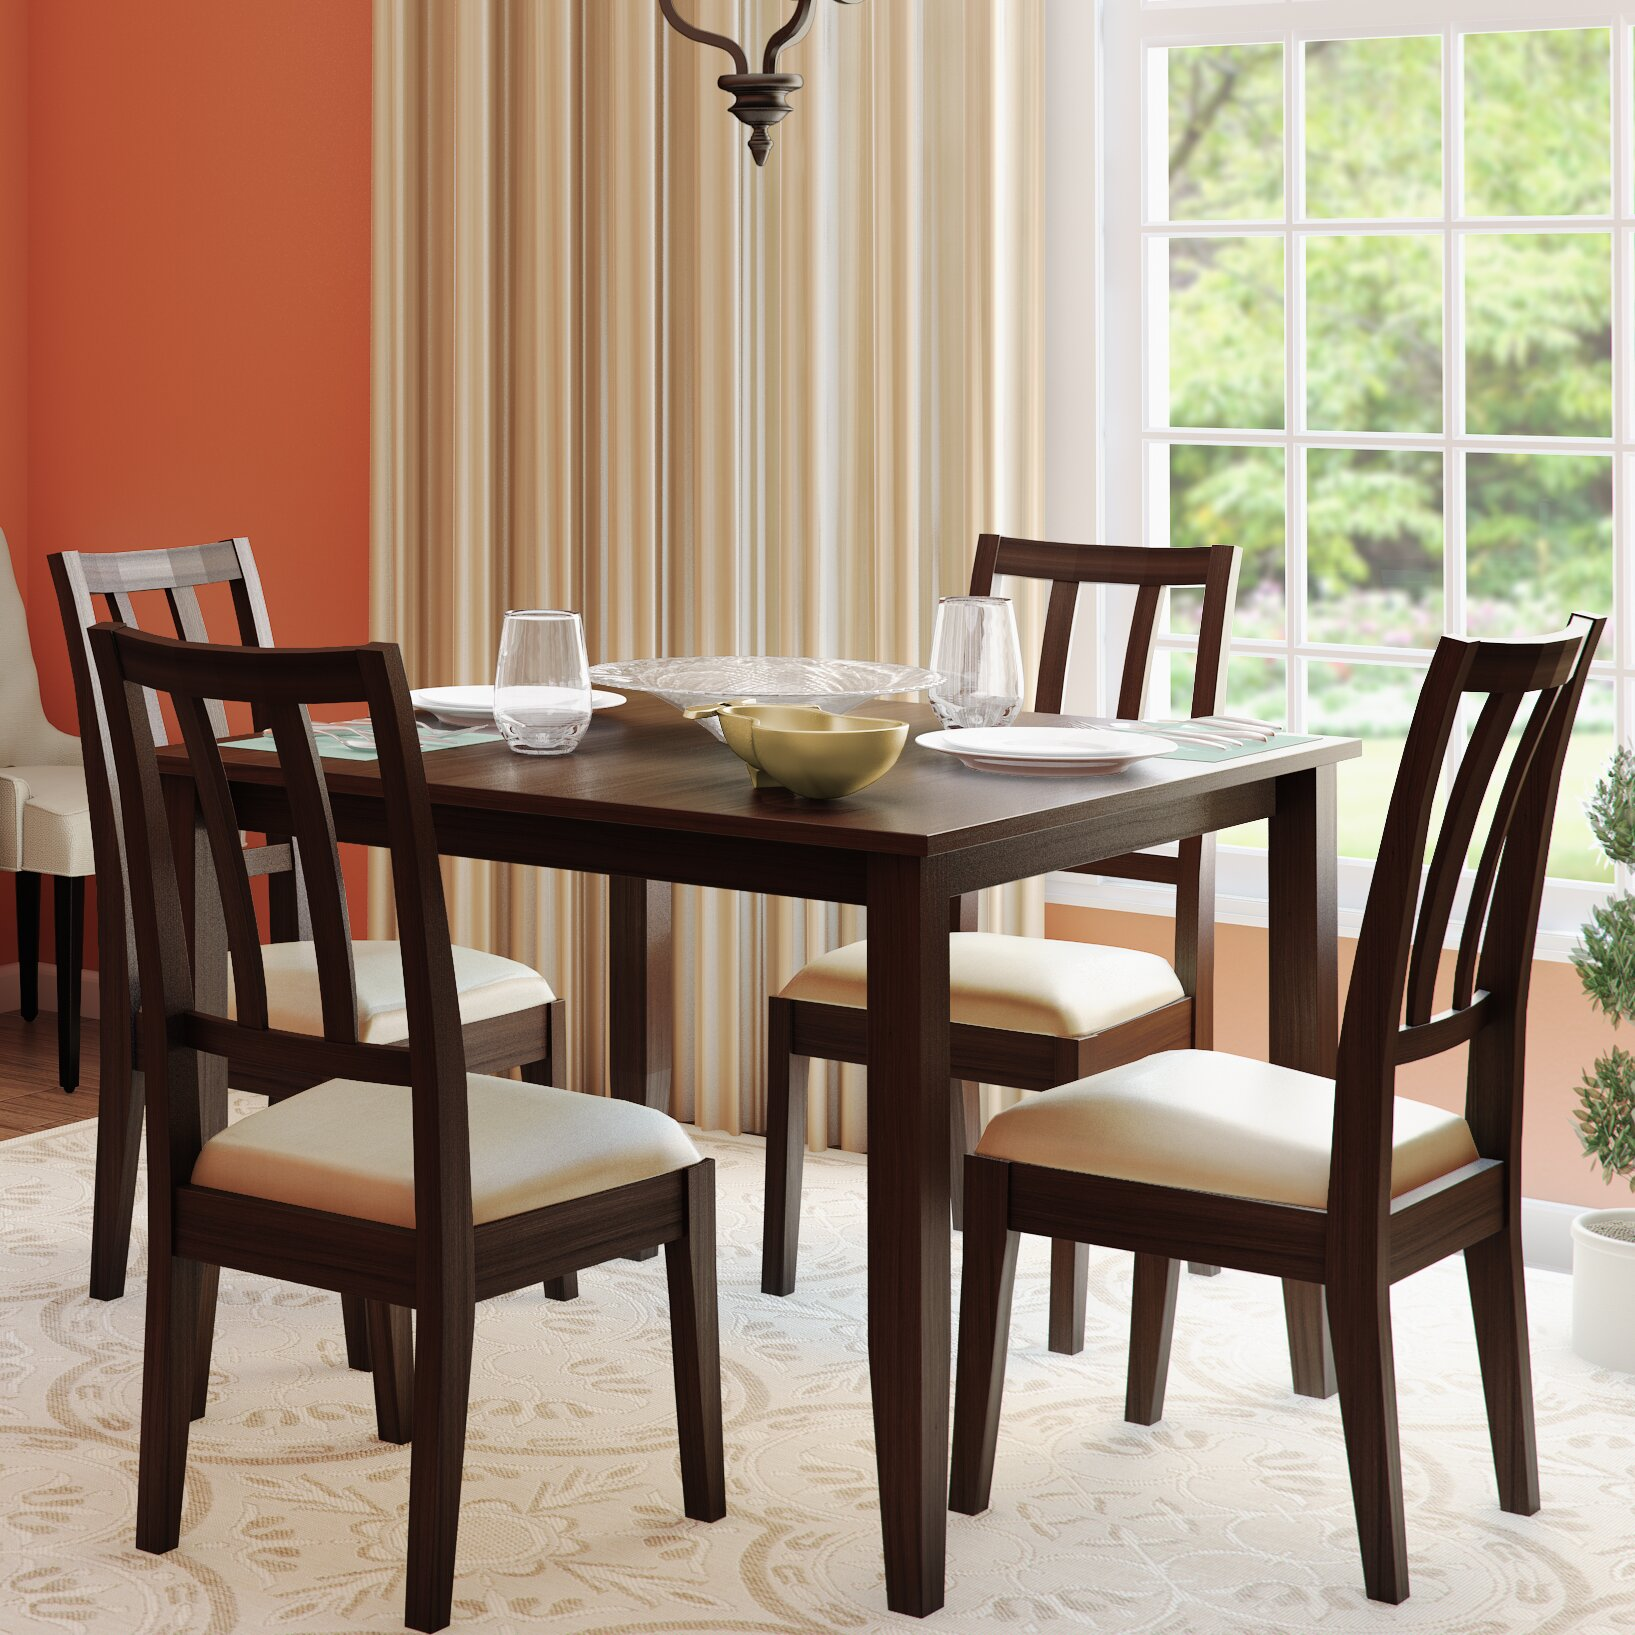 Dining Room Sets: Alcott Hill Primrose Road 5 Piece Dining Set & Reviews